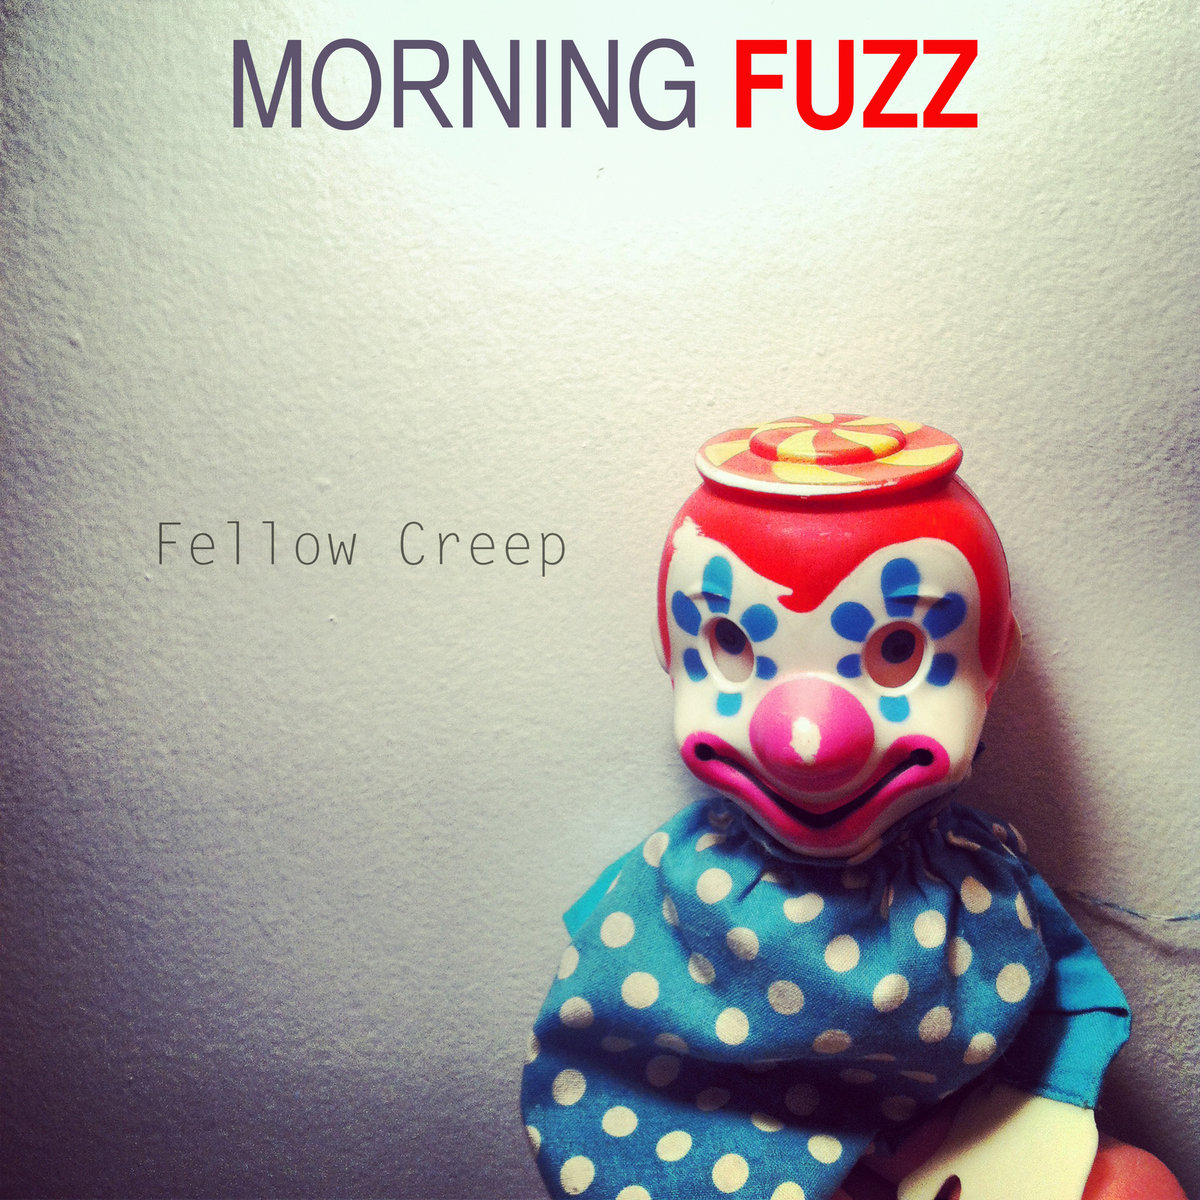 Fellow Creep by Morning Fuzz